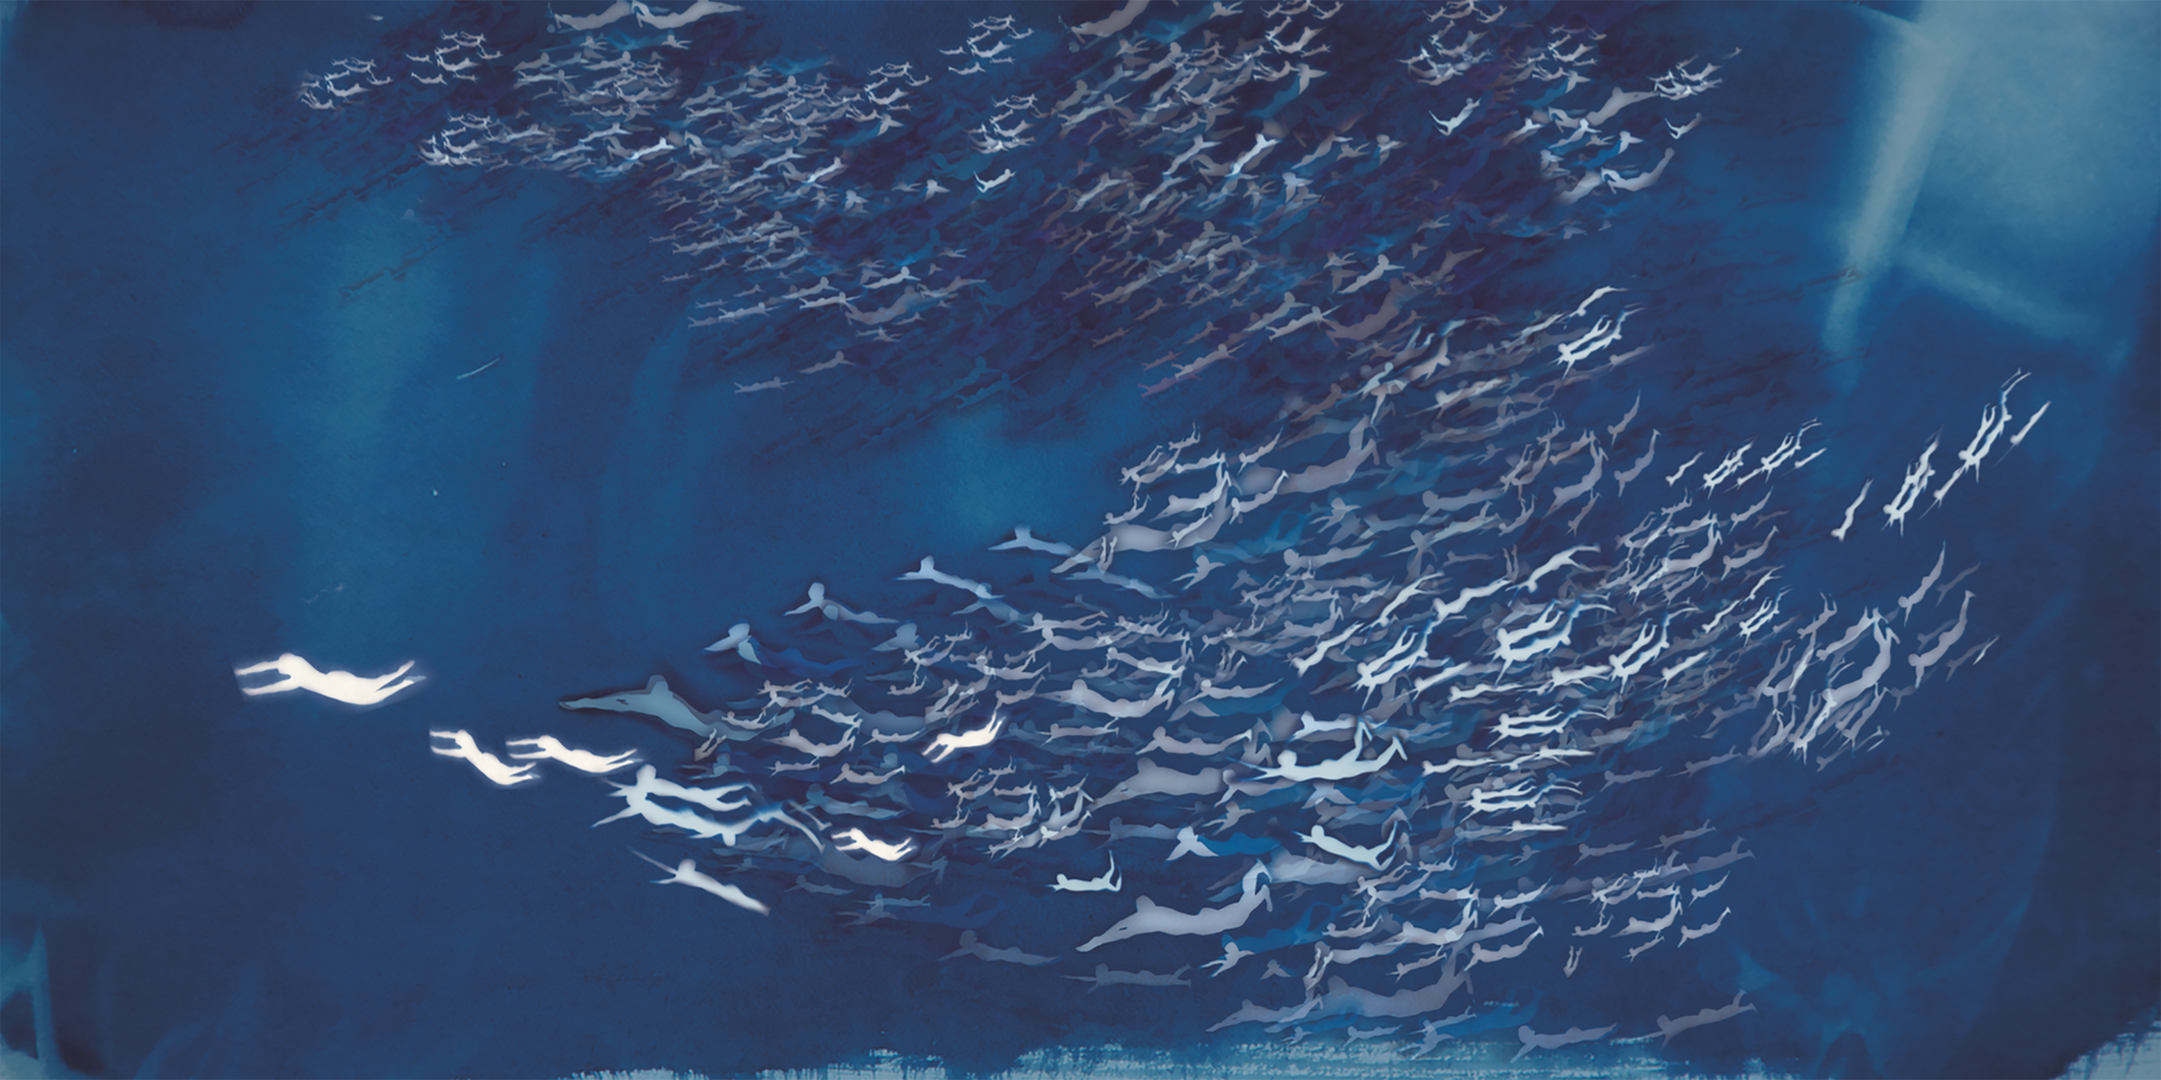 Han Qin, The Age of Migration 1, 2018, cyanotype, watercolor, inkjet print on silk, 28x 56 inches